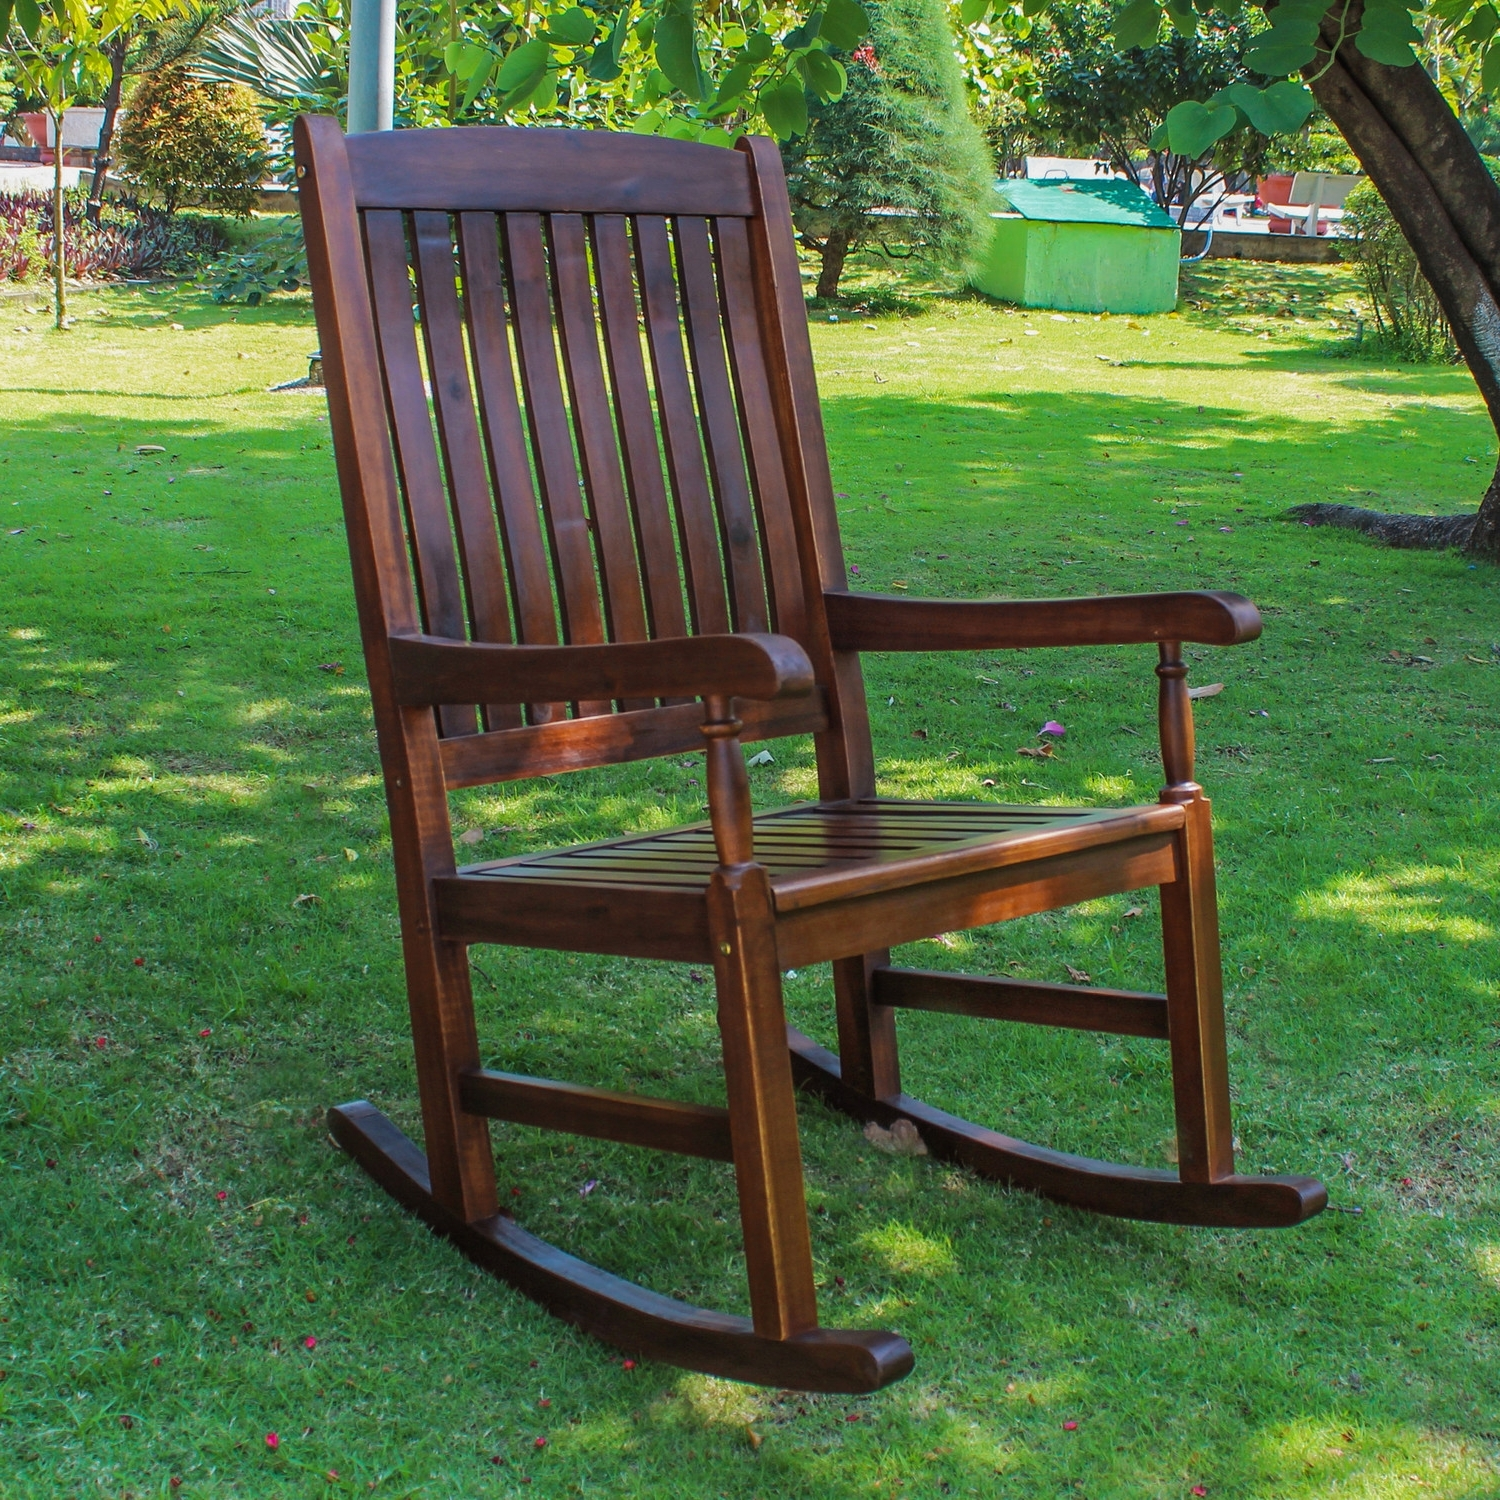 Preferred Garden & Patio Furniture : Wooden Outdoor Rocking Chairs Wooden Within Rocking Chairs For Garden (View 9 of 20)